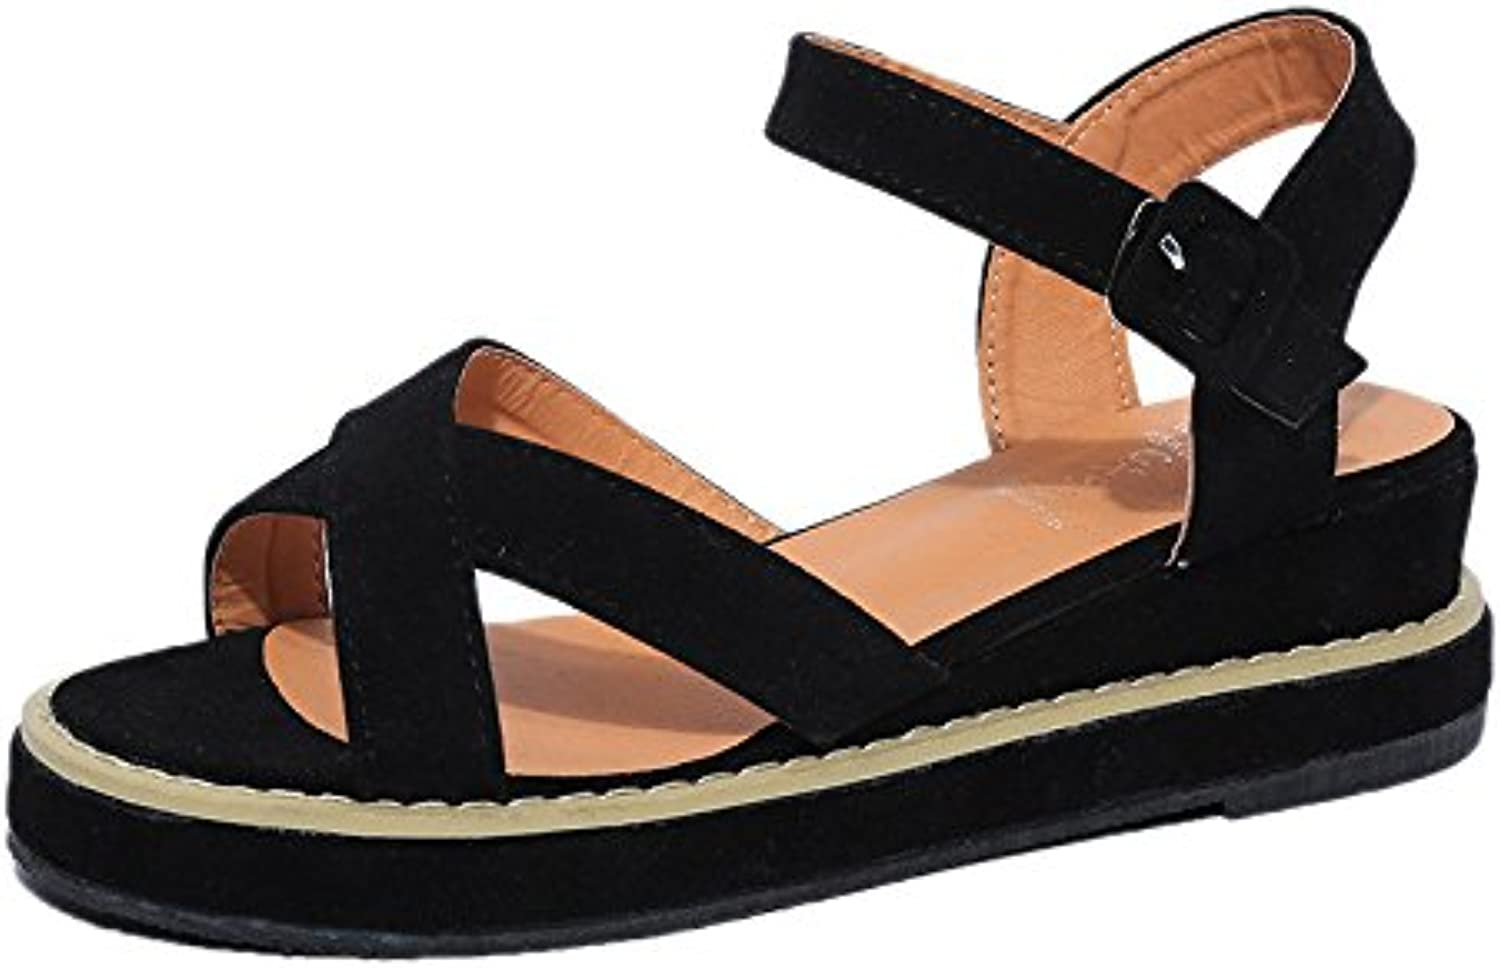 KAI-Flat heel sandals with flat sandals and sandals,black,Thirty-nine